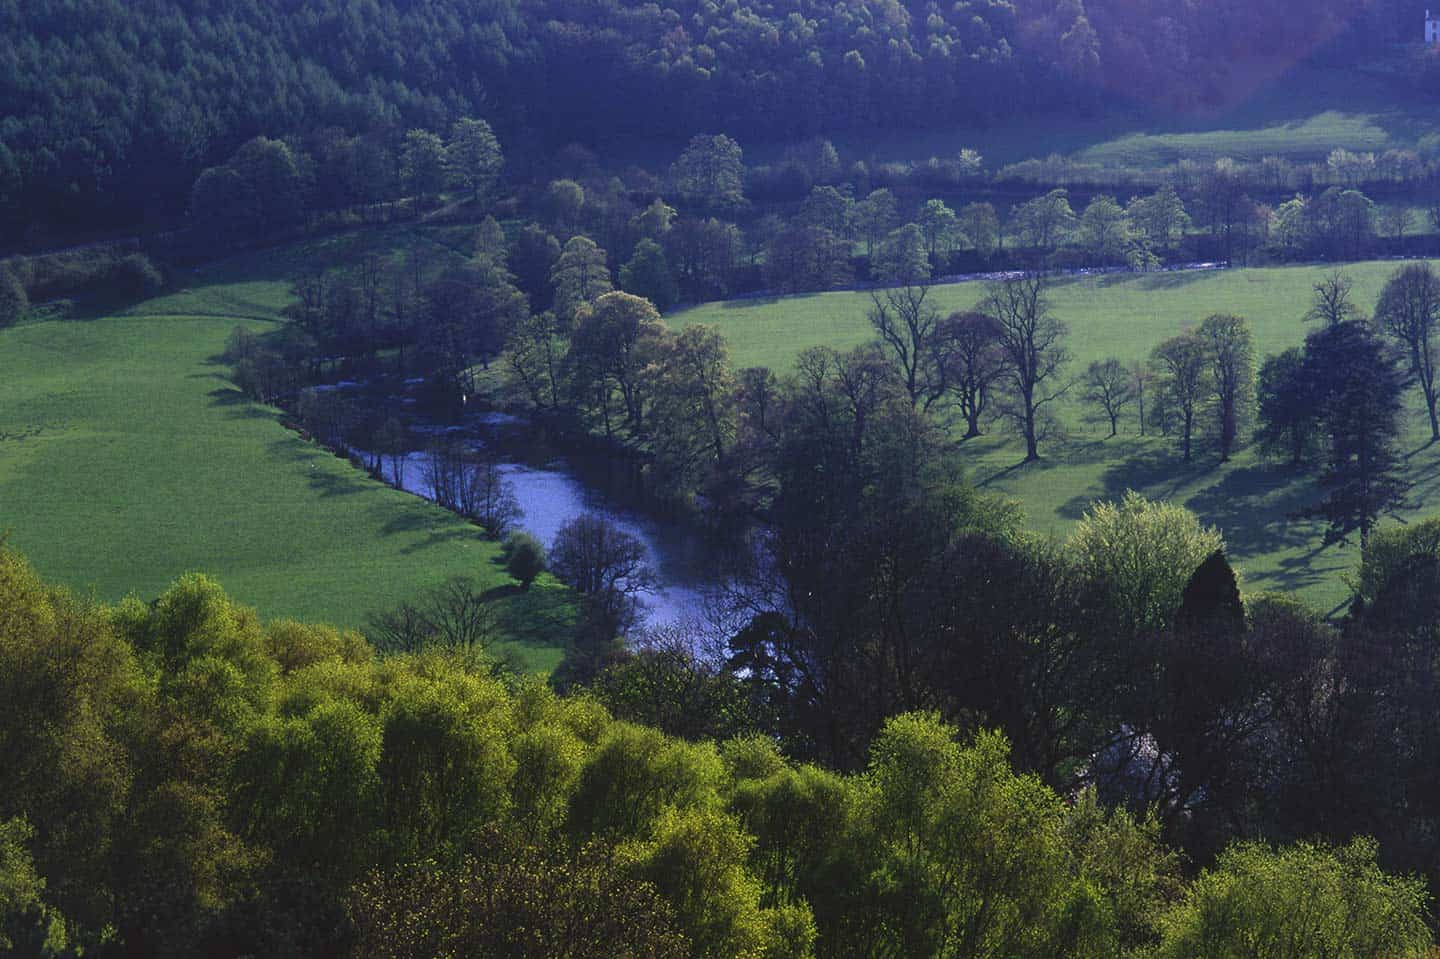 Image of the Dee Valley near Llangollen